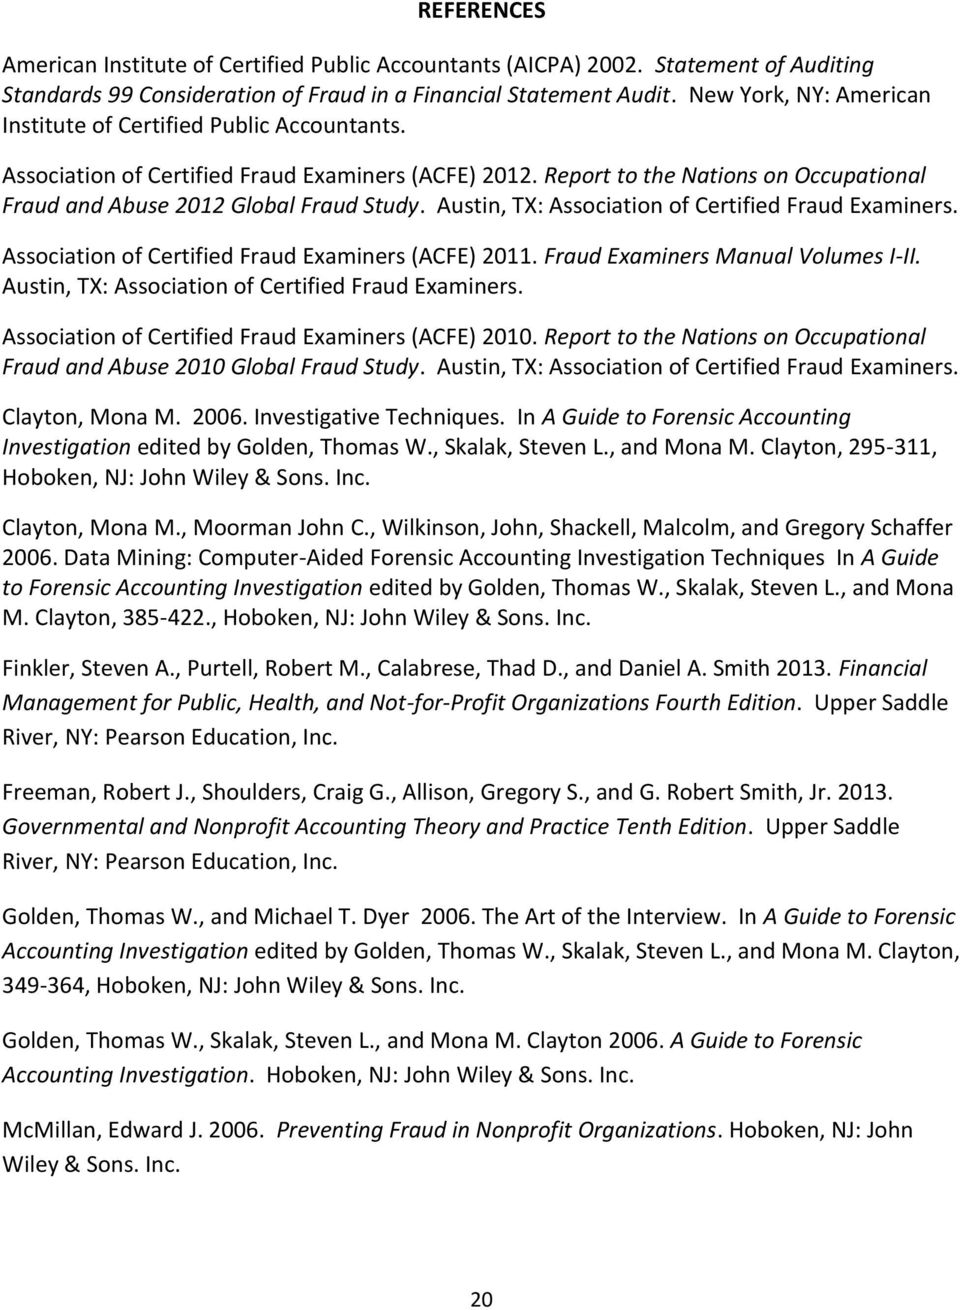 Austin, TX: Association of Certified Fraud Examiners. Association of Certified Fraud Examiners (ACFE) 2011. Fraud Examiners Manual Volumes I-II. Austin, TX: Association of Certified Fraud Examiners.